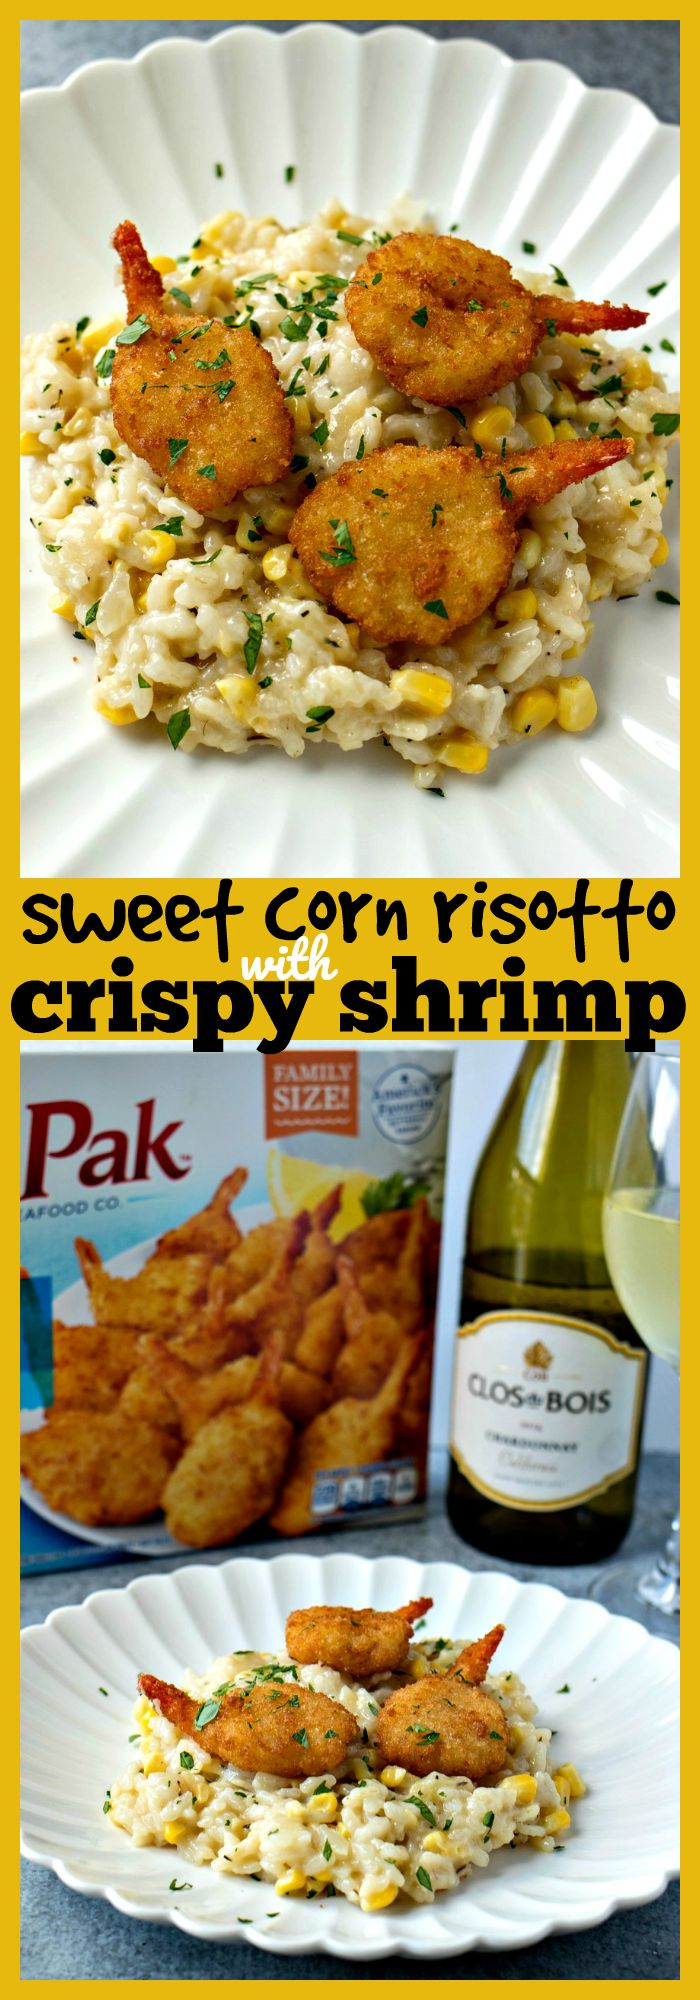 Sweet Corn Risotto with Crispy Shrimp – Creamy, cheesy homemade risotto is taken up a notch with fresh sweet yellow corn and paired perfect with SeaPak® Butterfly Shrimp and Clos du Bois Chardonnay. #ad #recipe #shrimp #corn #cheese @seapakshrimpco @closdubois